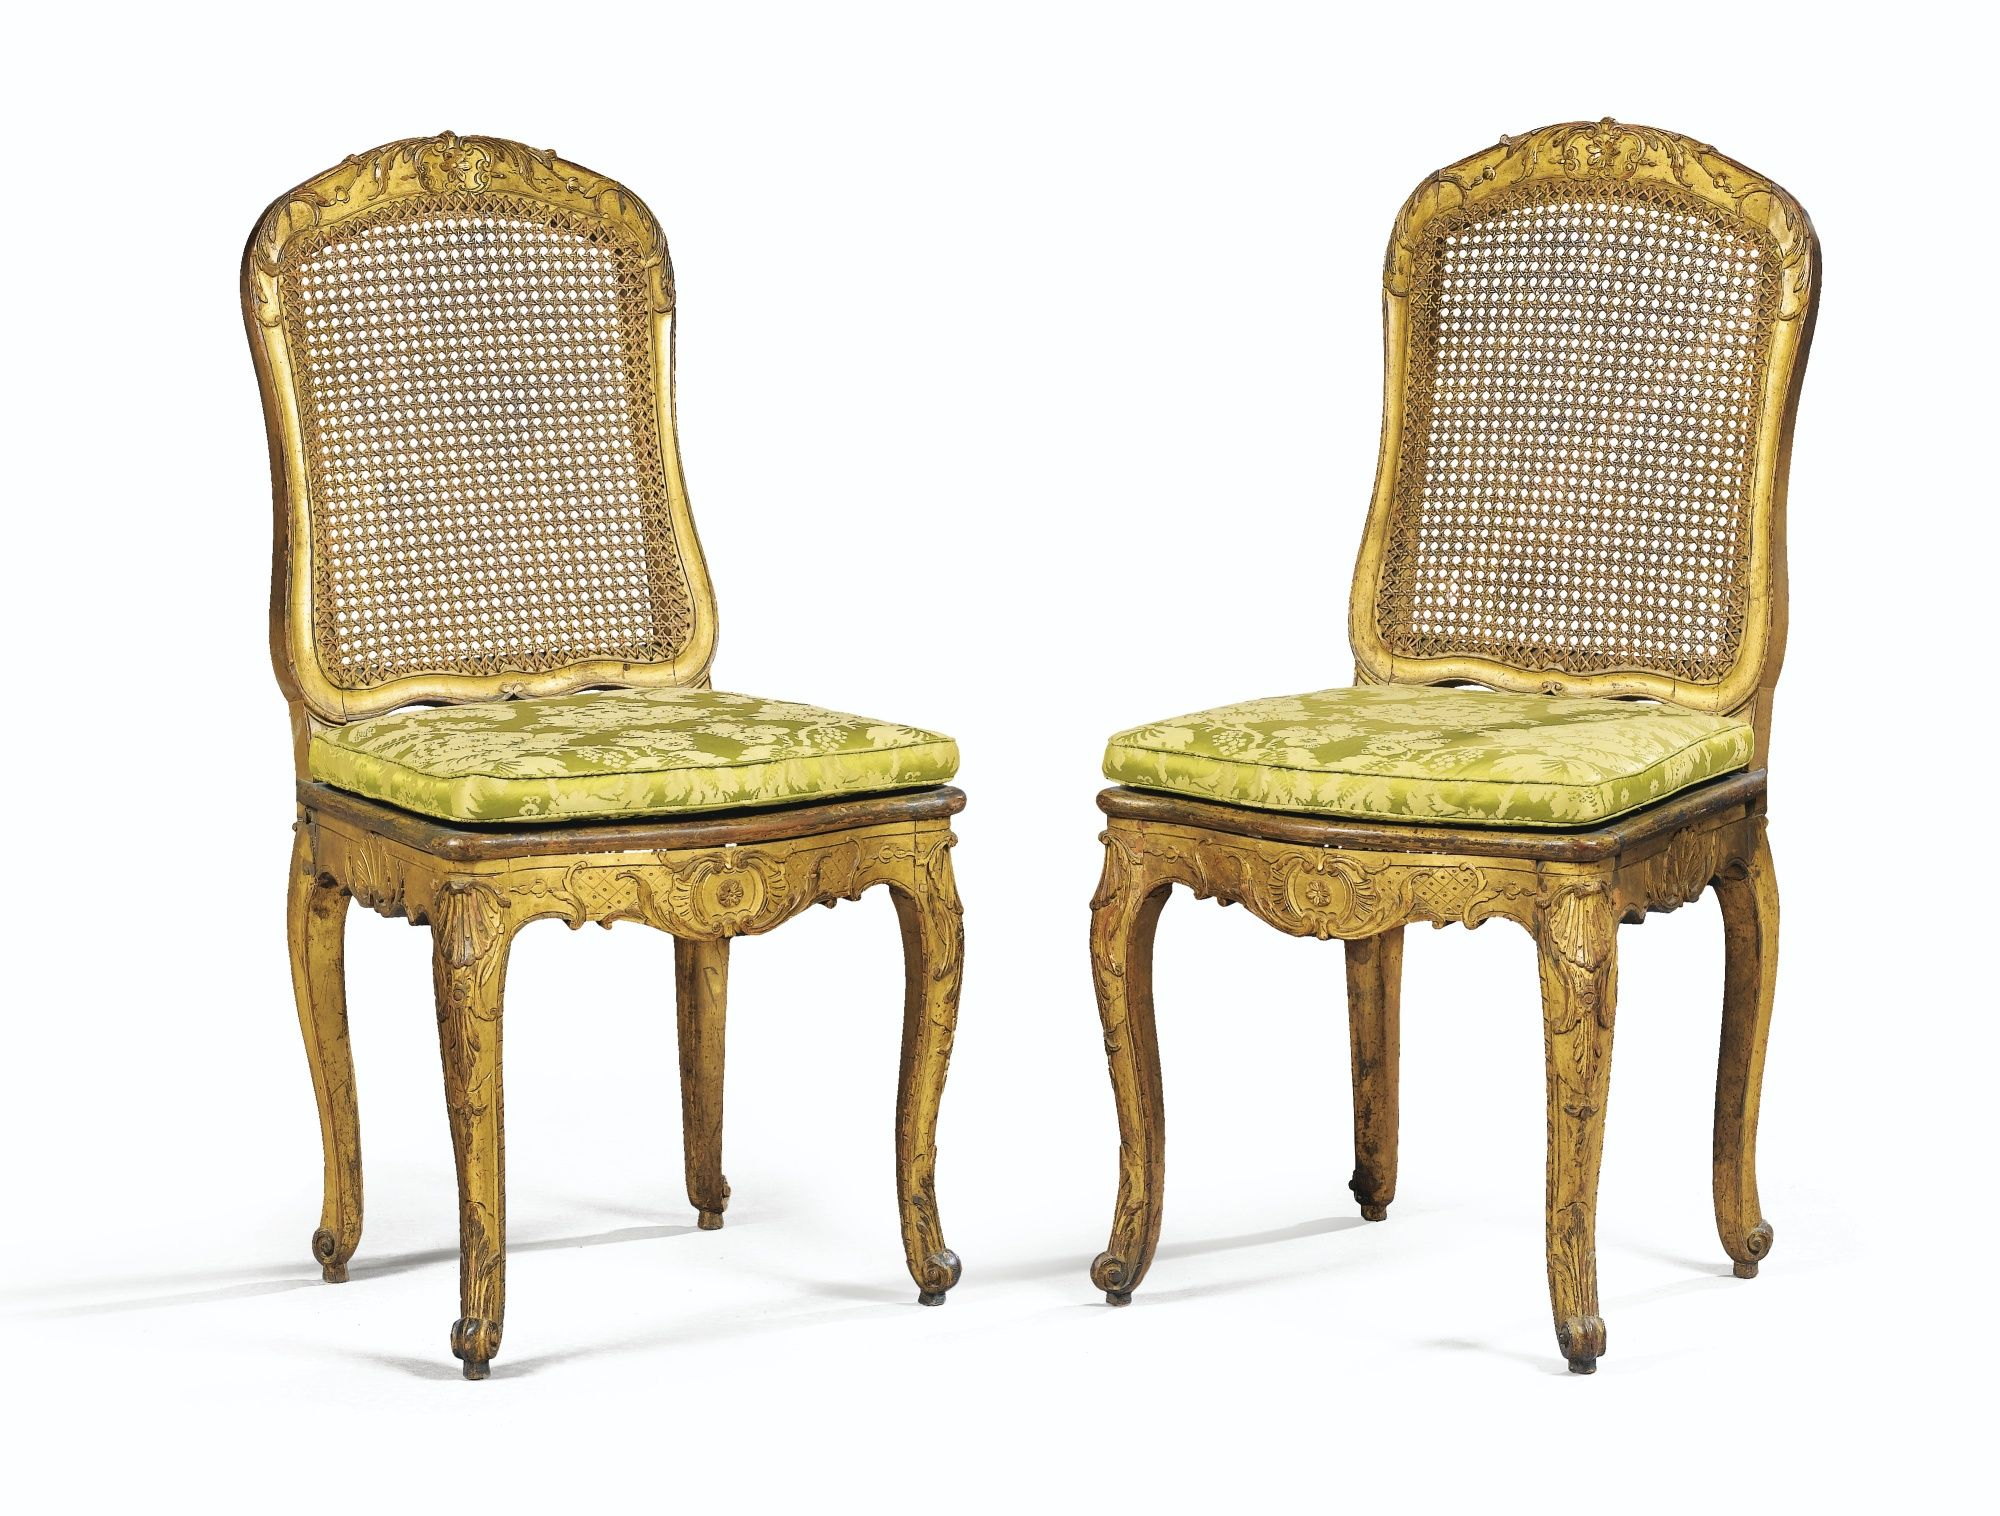 Date Unspecified A Pair Of Giltwood Chairs Regence Regilt Estimate 800 1 200 Eur Lot Sold 1 125 Eur Hammer Price With Chaise Cannee Mobilier Regence